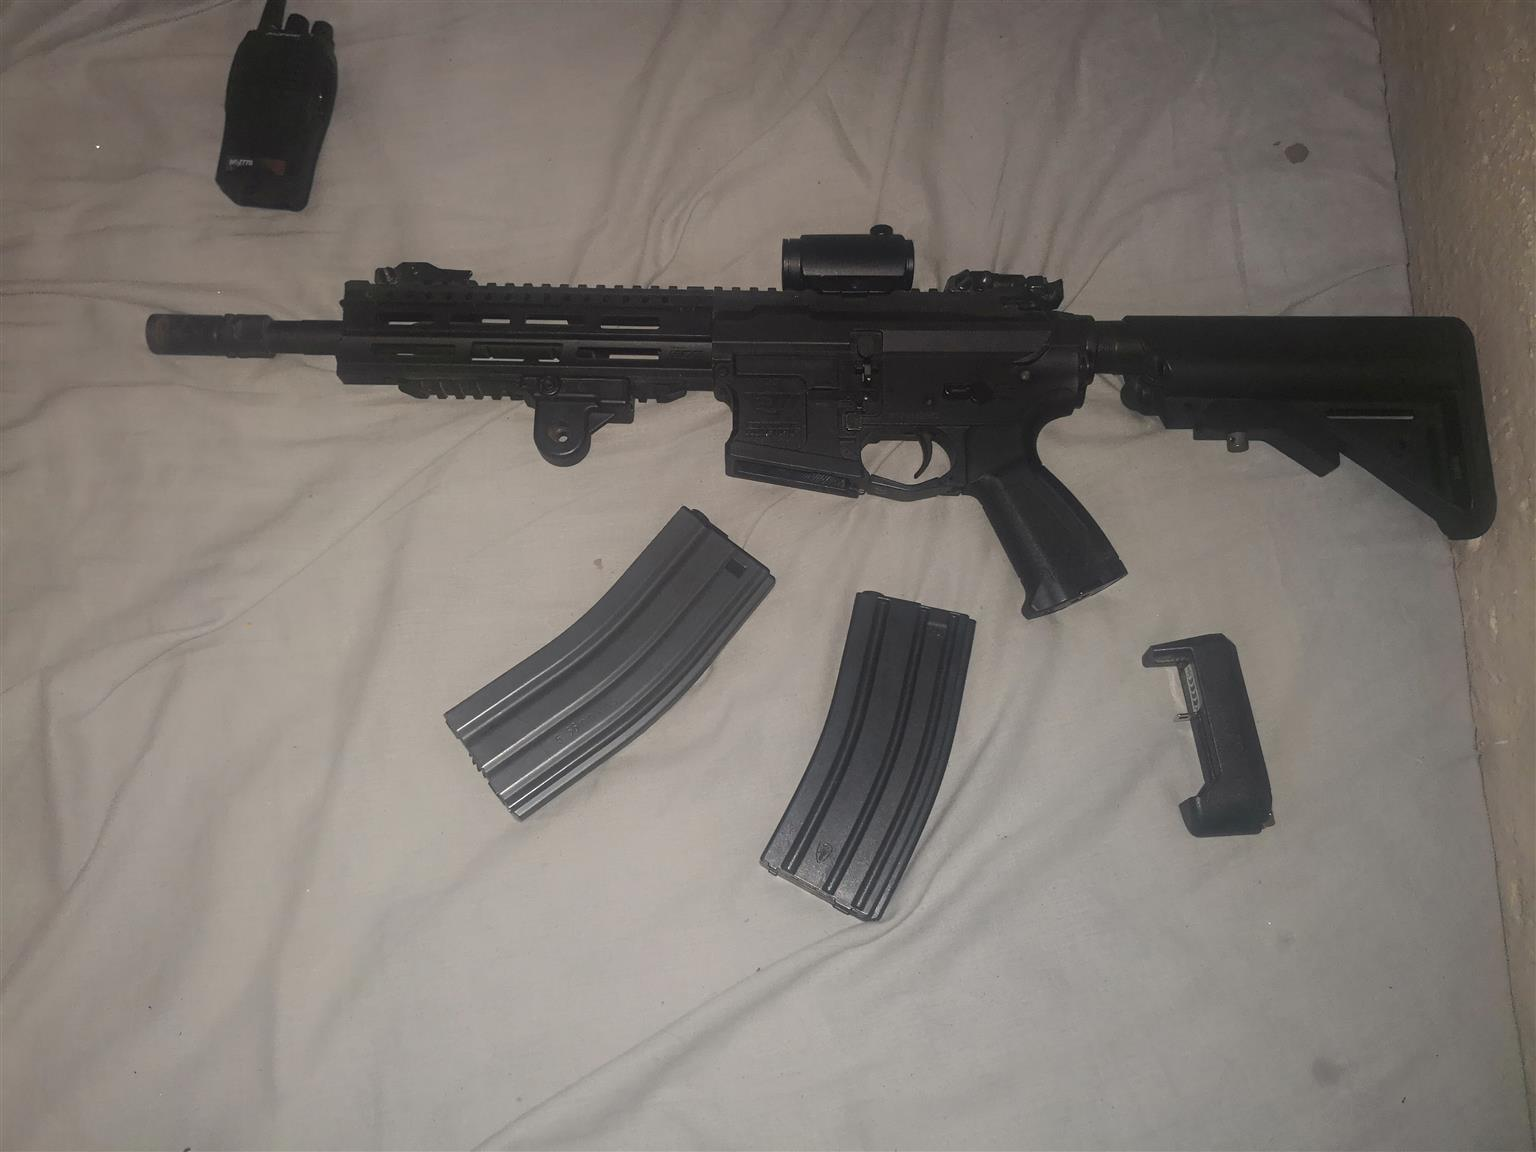 Airsoft gun and gear for sale